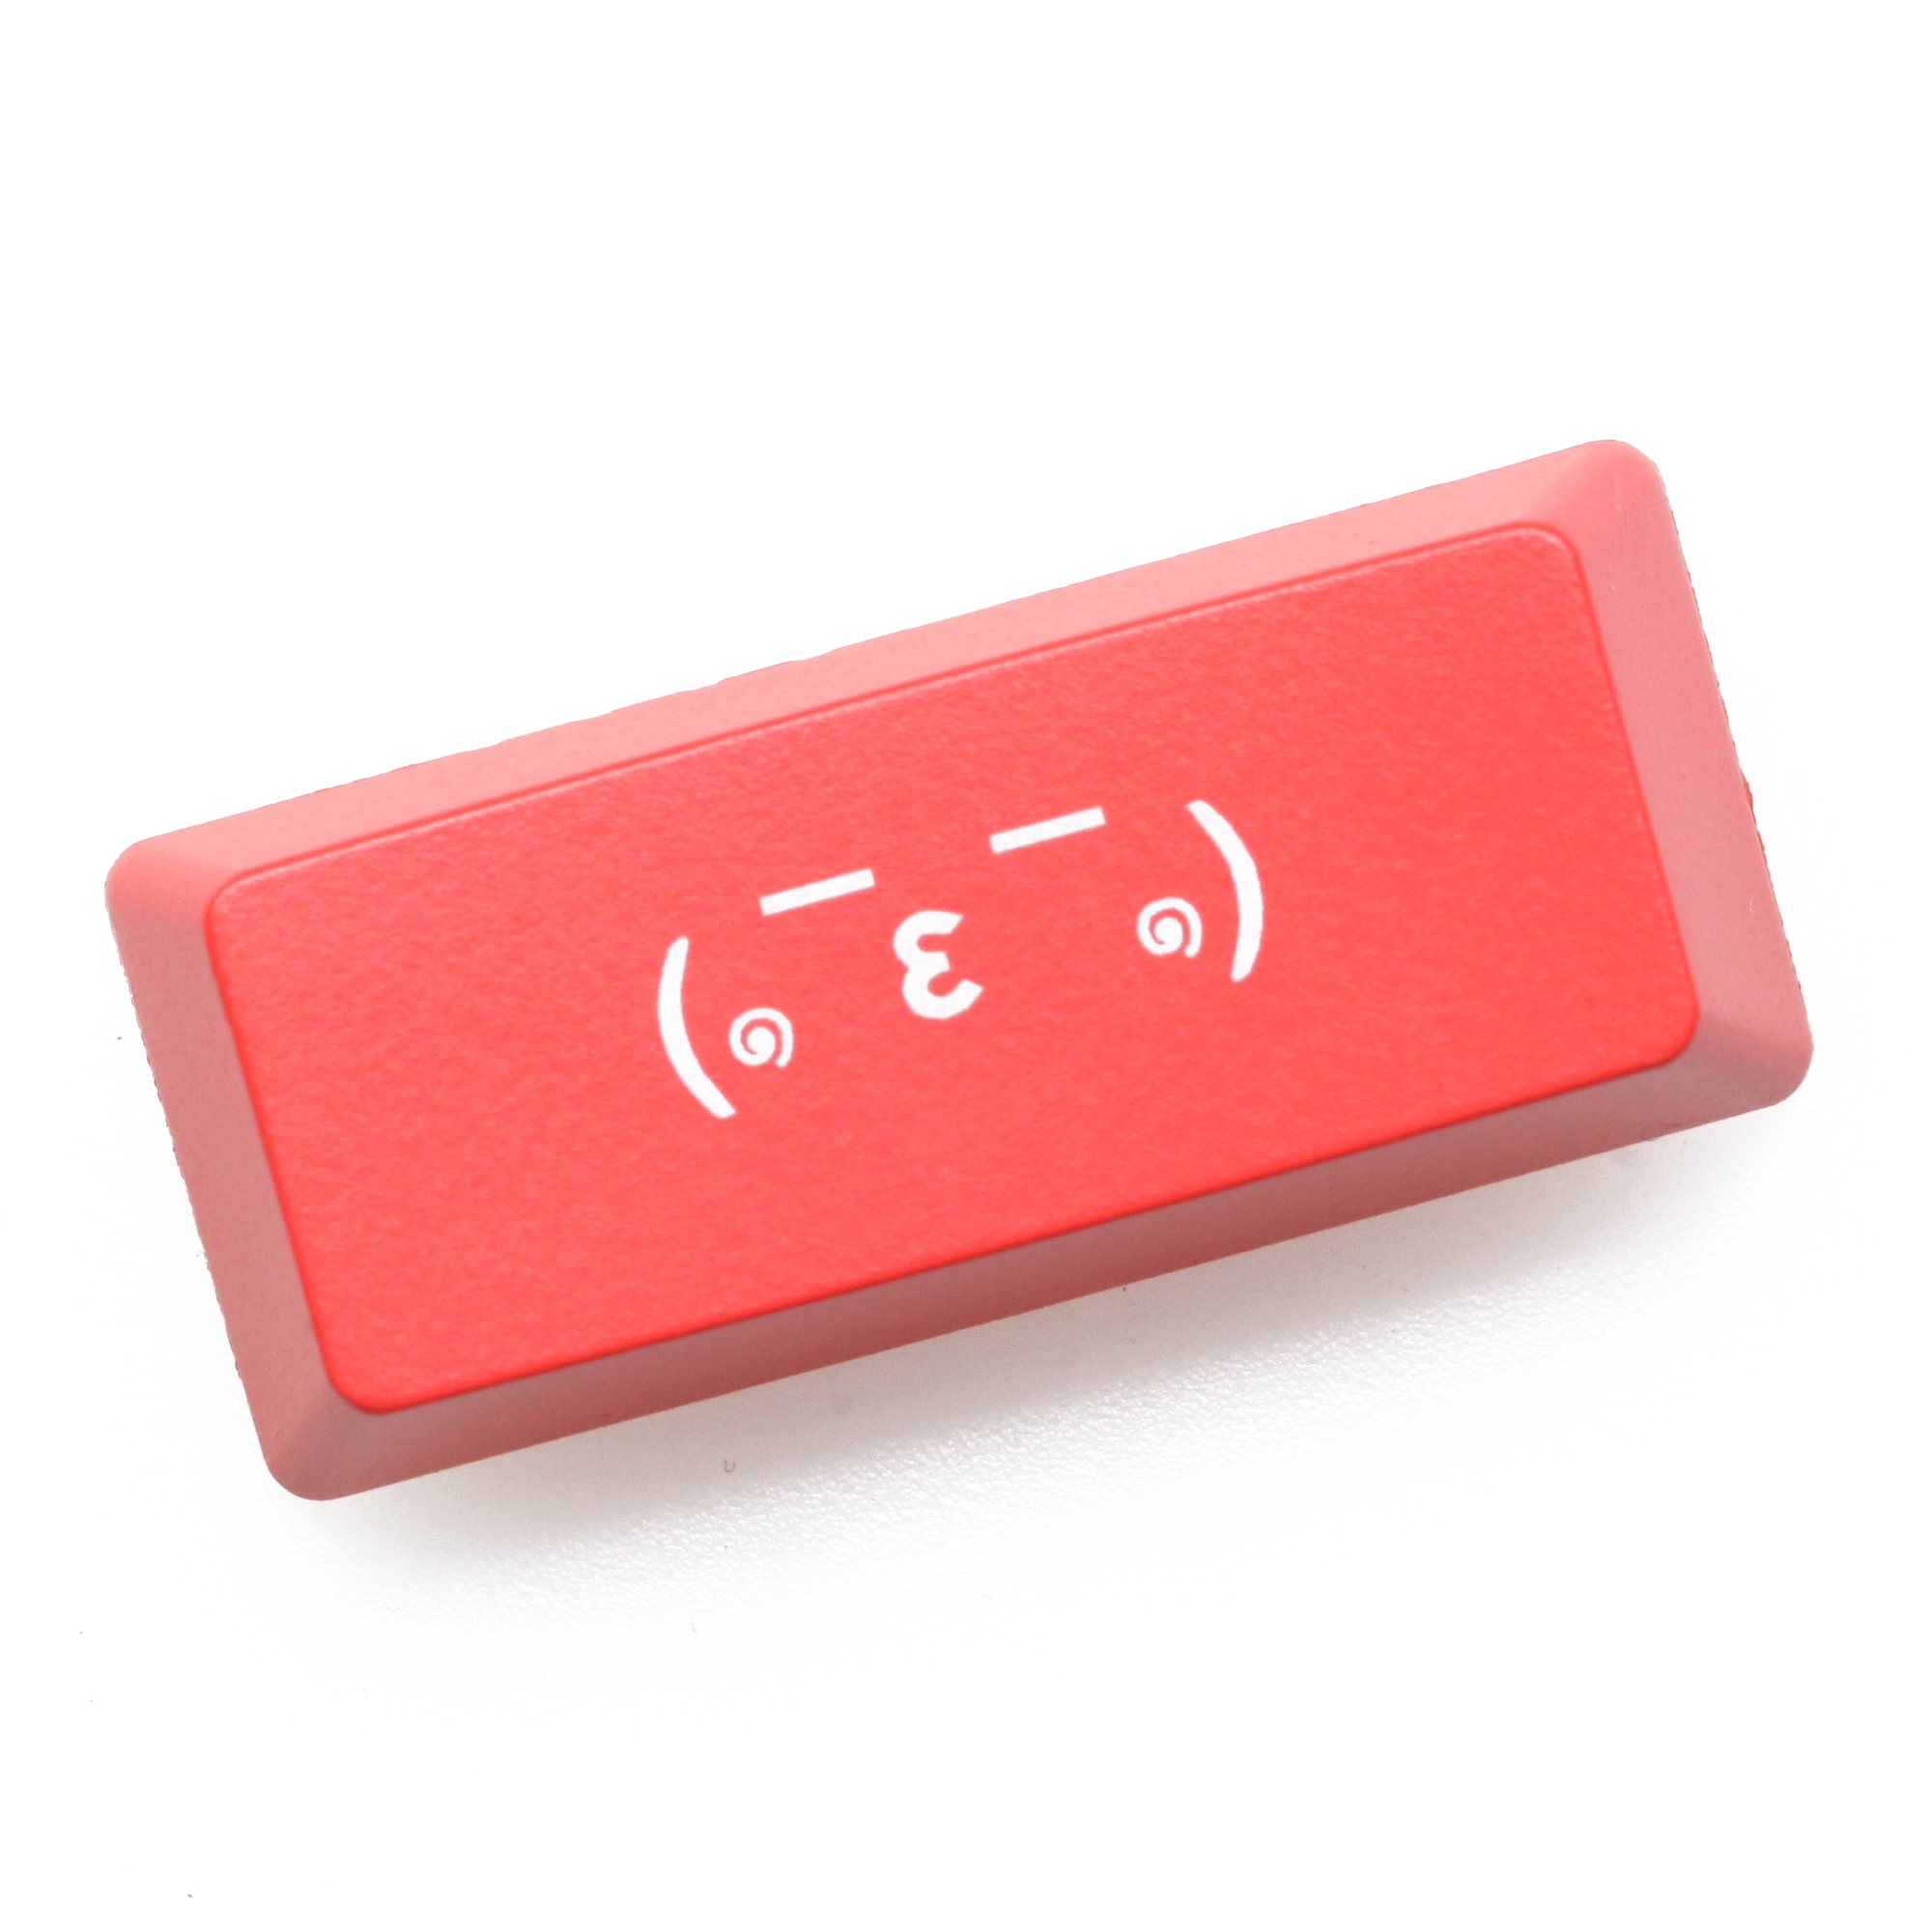 Novelty Shine Through Keycap ABS Etched Shine-Through Left Shift 1.25u Alt 2.25u Shift Kaomoji Sleep Kiss Snicker